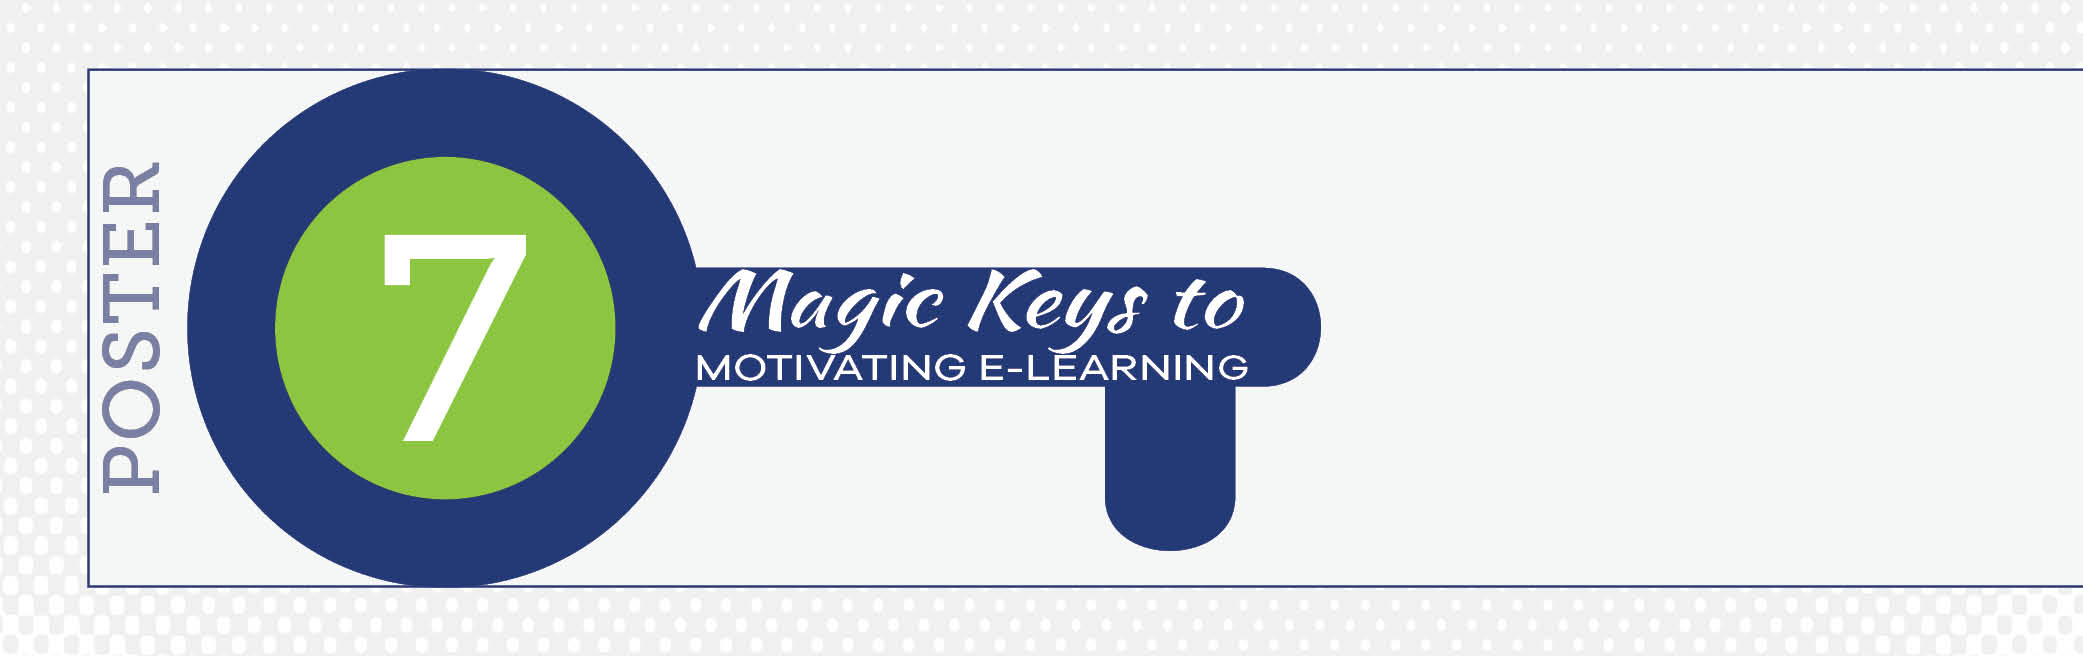 7 Magic Keys to Motivating ELearning